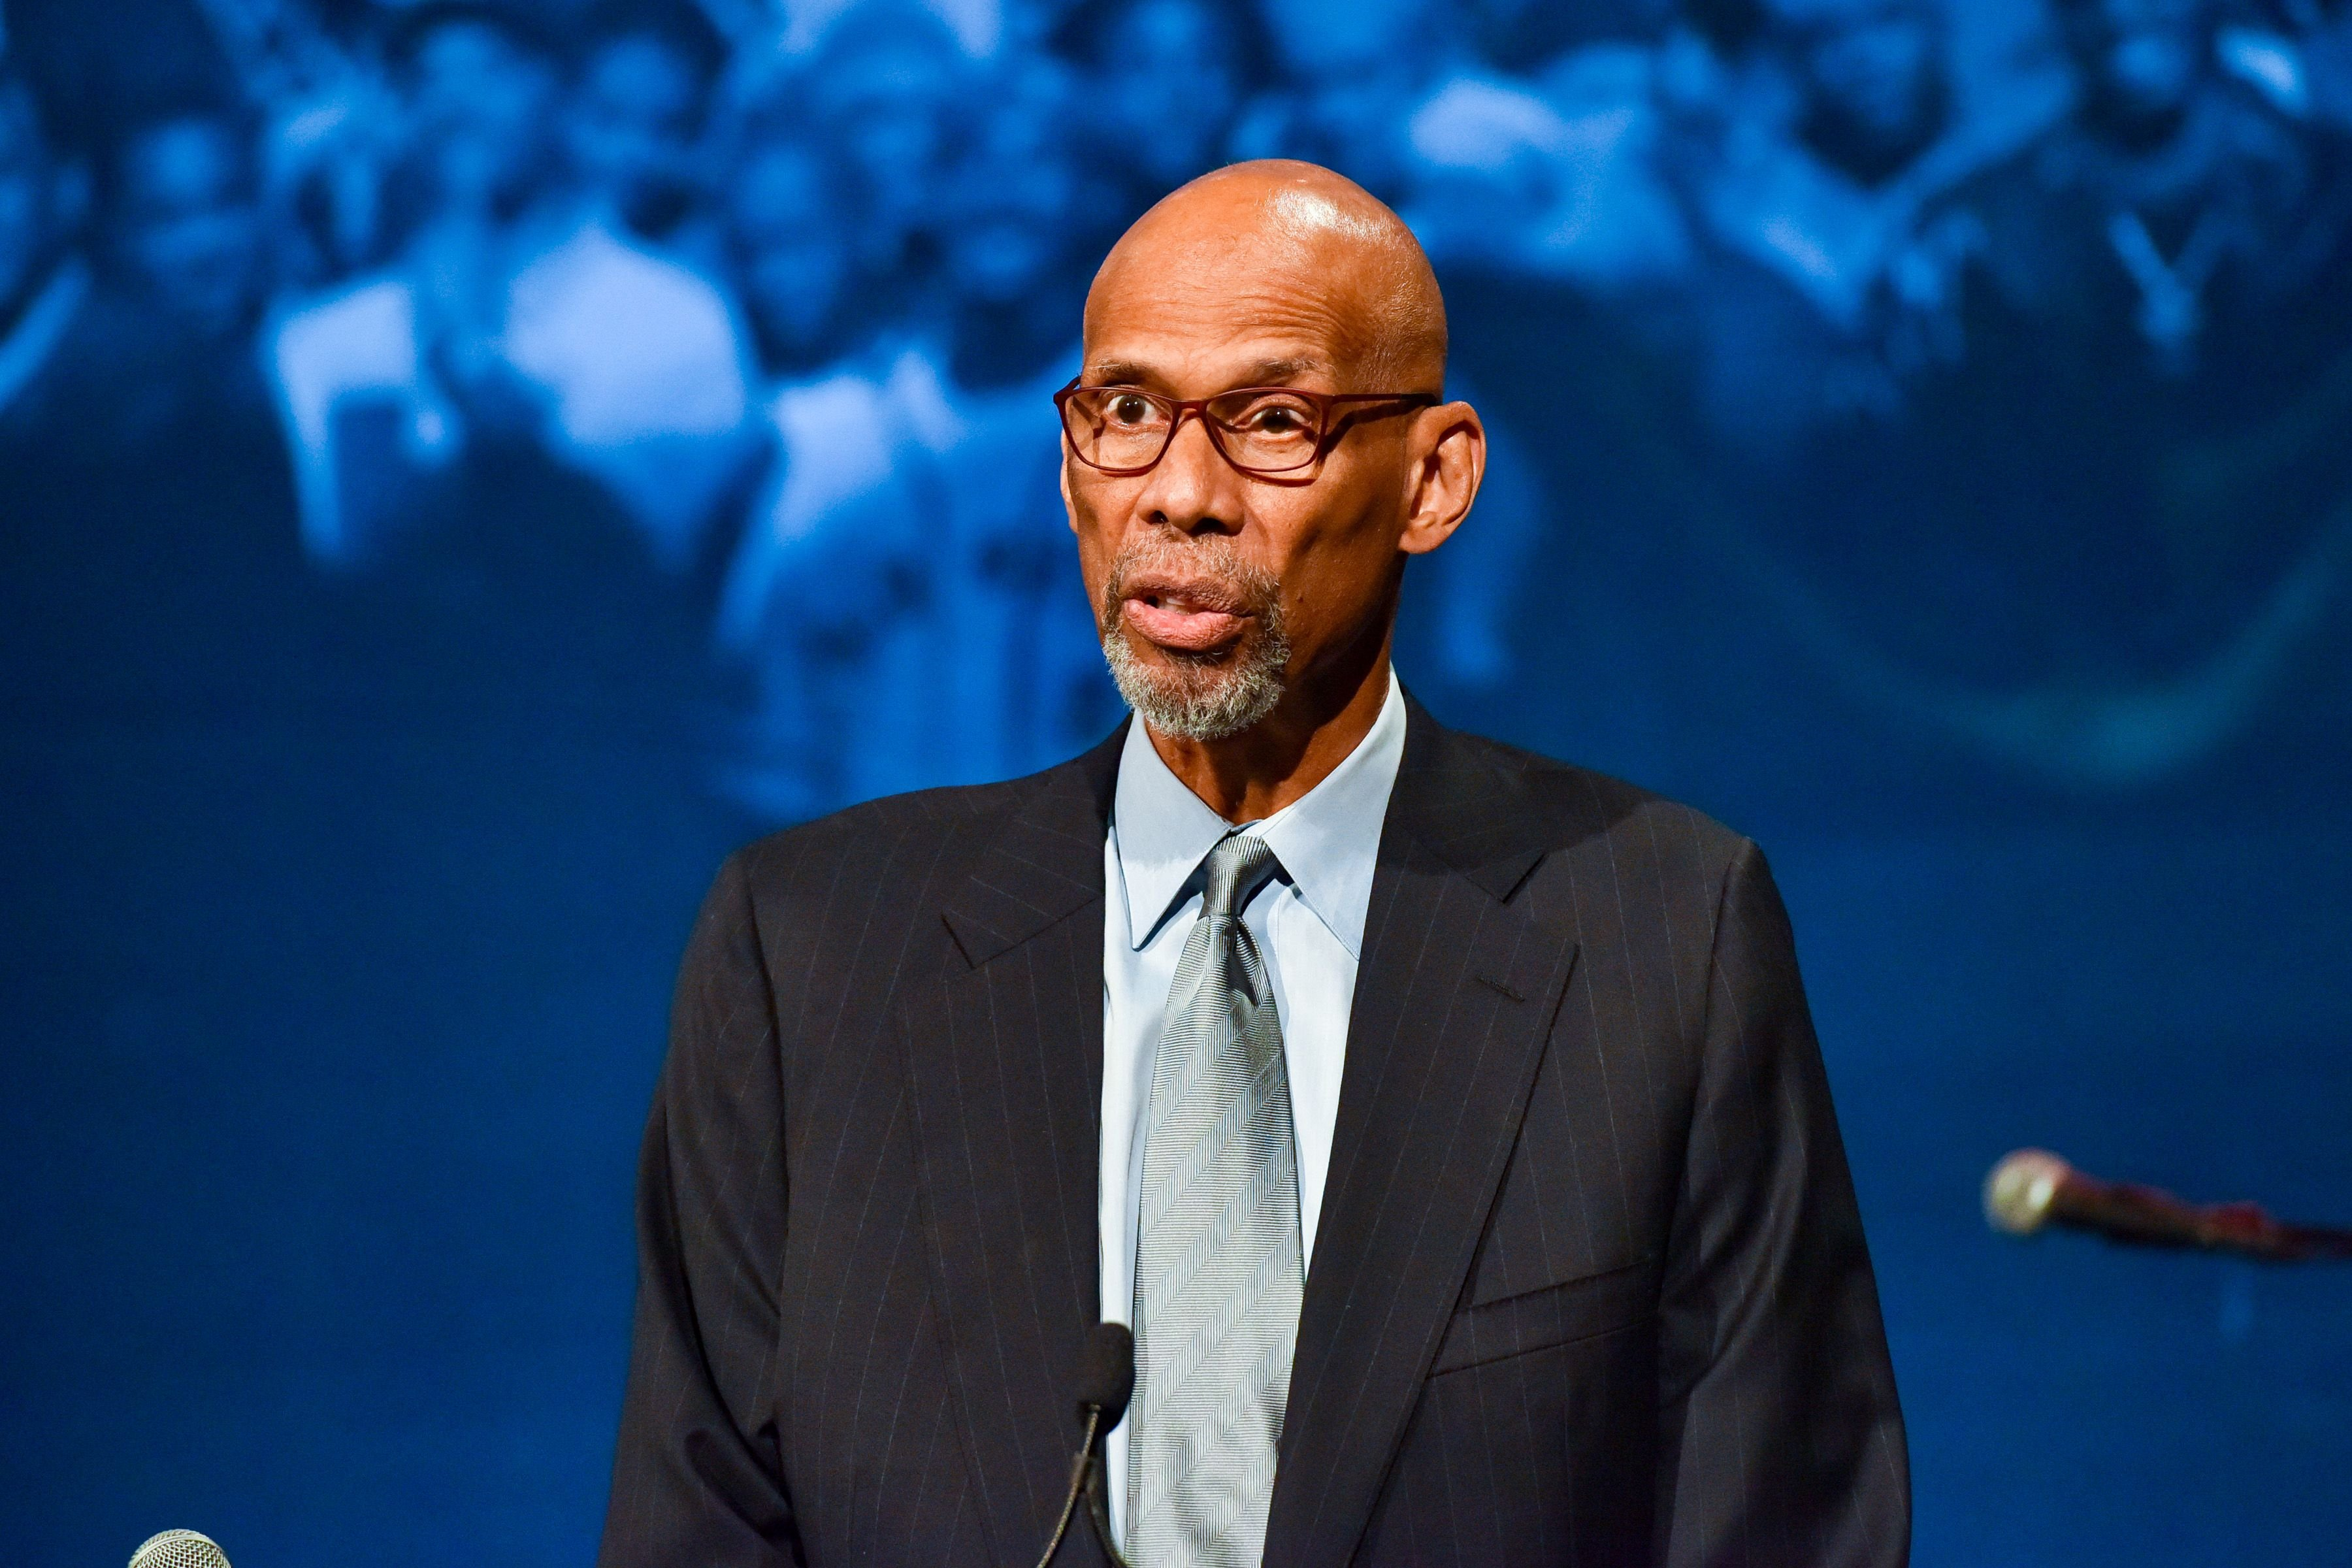 Kareem Abdul-Jabbar speaking at the The Gordon Parks Foundation 2019 Annual Awards in New York City | Source: Getty Images